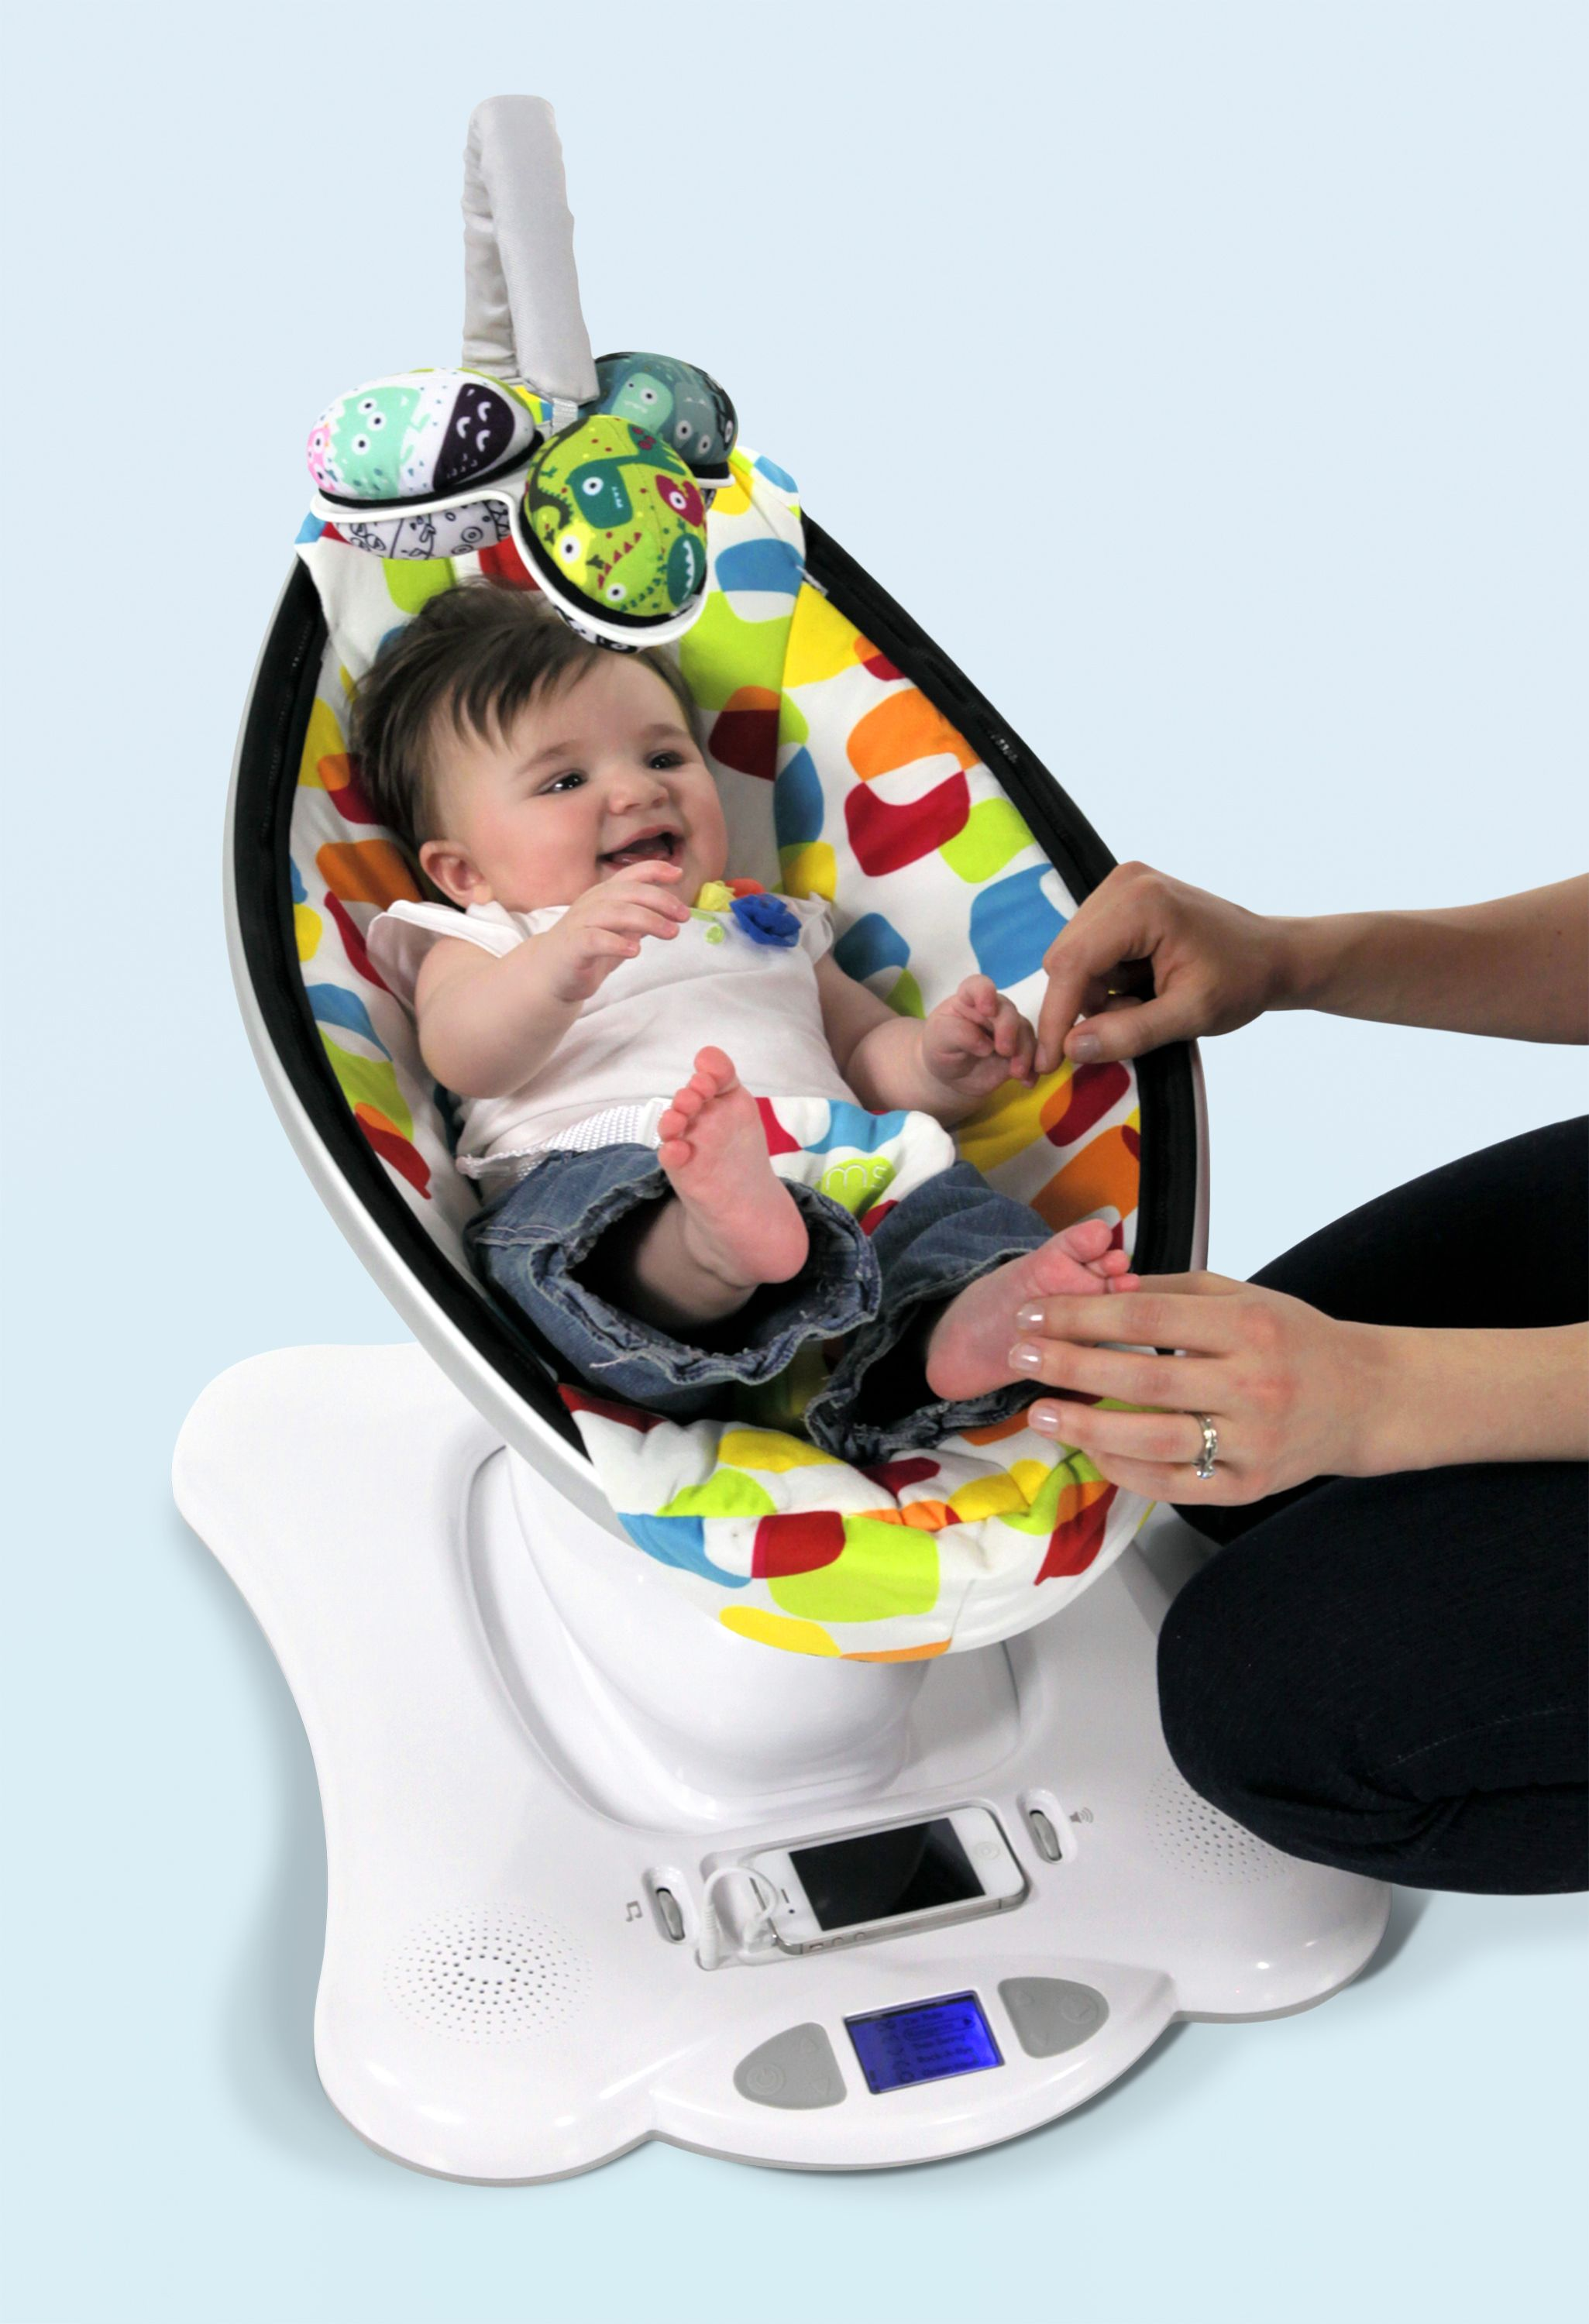 Mamaroo In Multi Color Plush Very Cool Seat That Mimics The Human Body's  Movements, Rather Than Just A Swing Or A Bouncy Seat Would Be Nice To Have  When